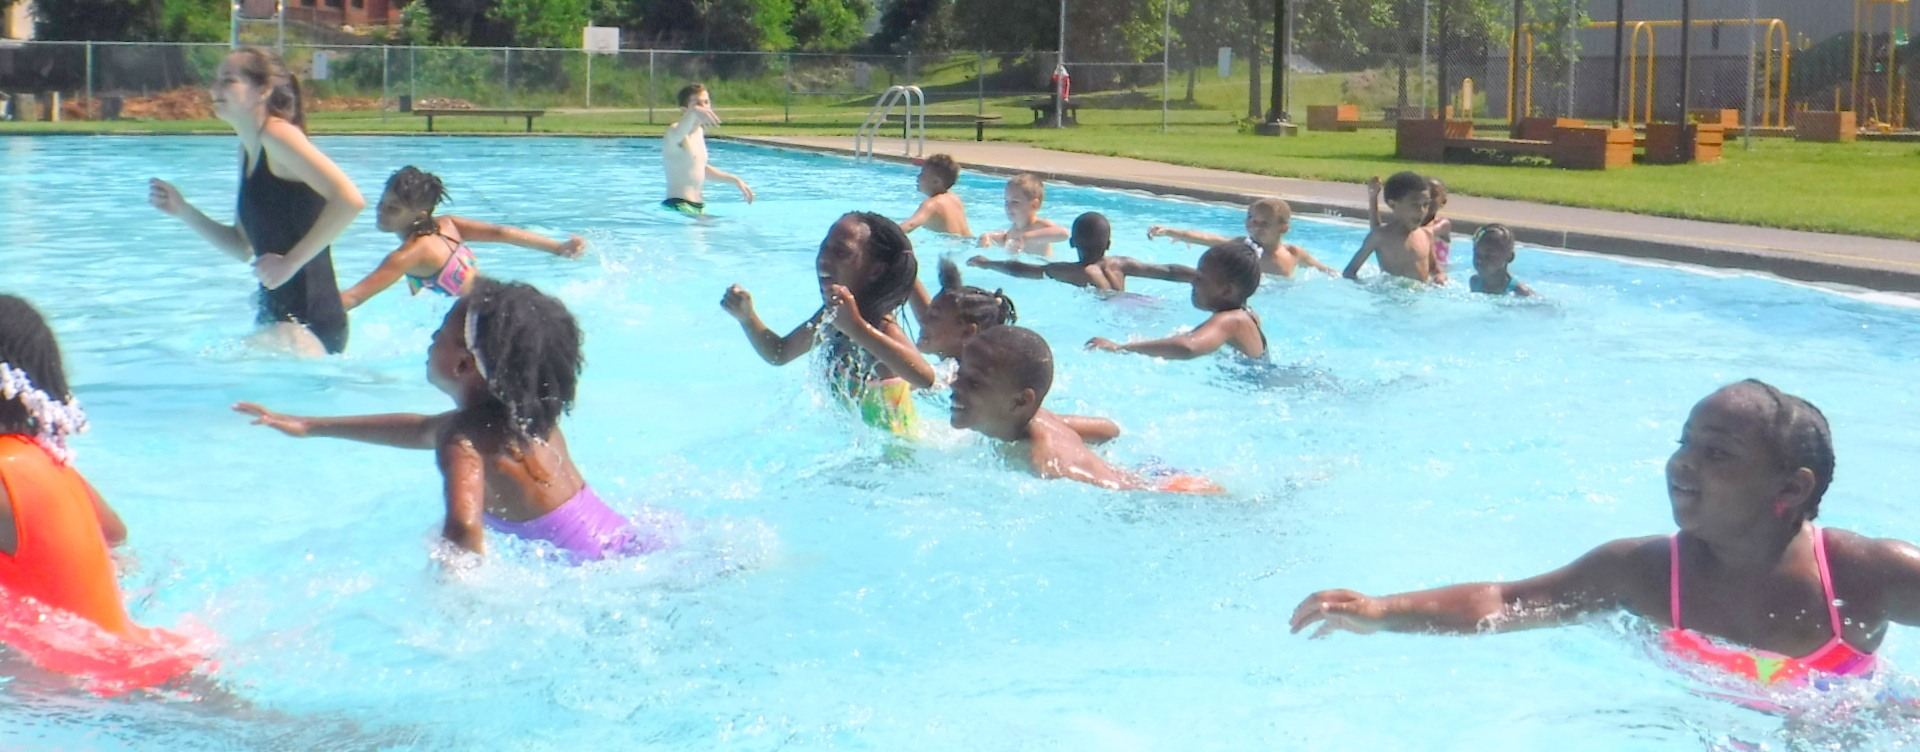 Kids running in the swim pool at The Pittsburgh Project